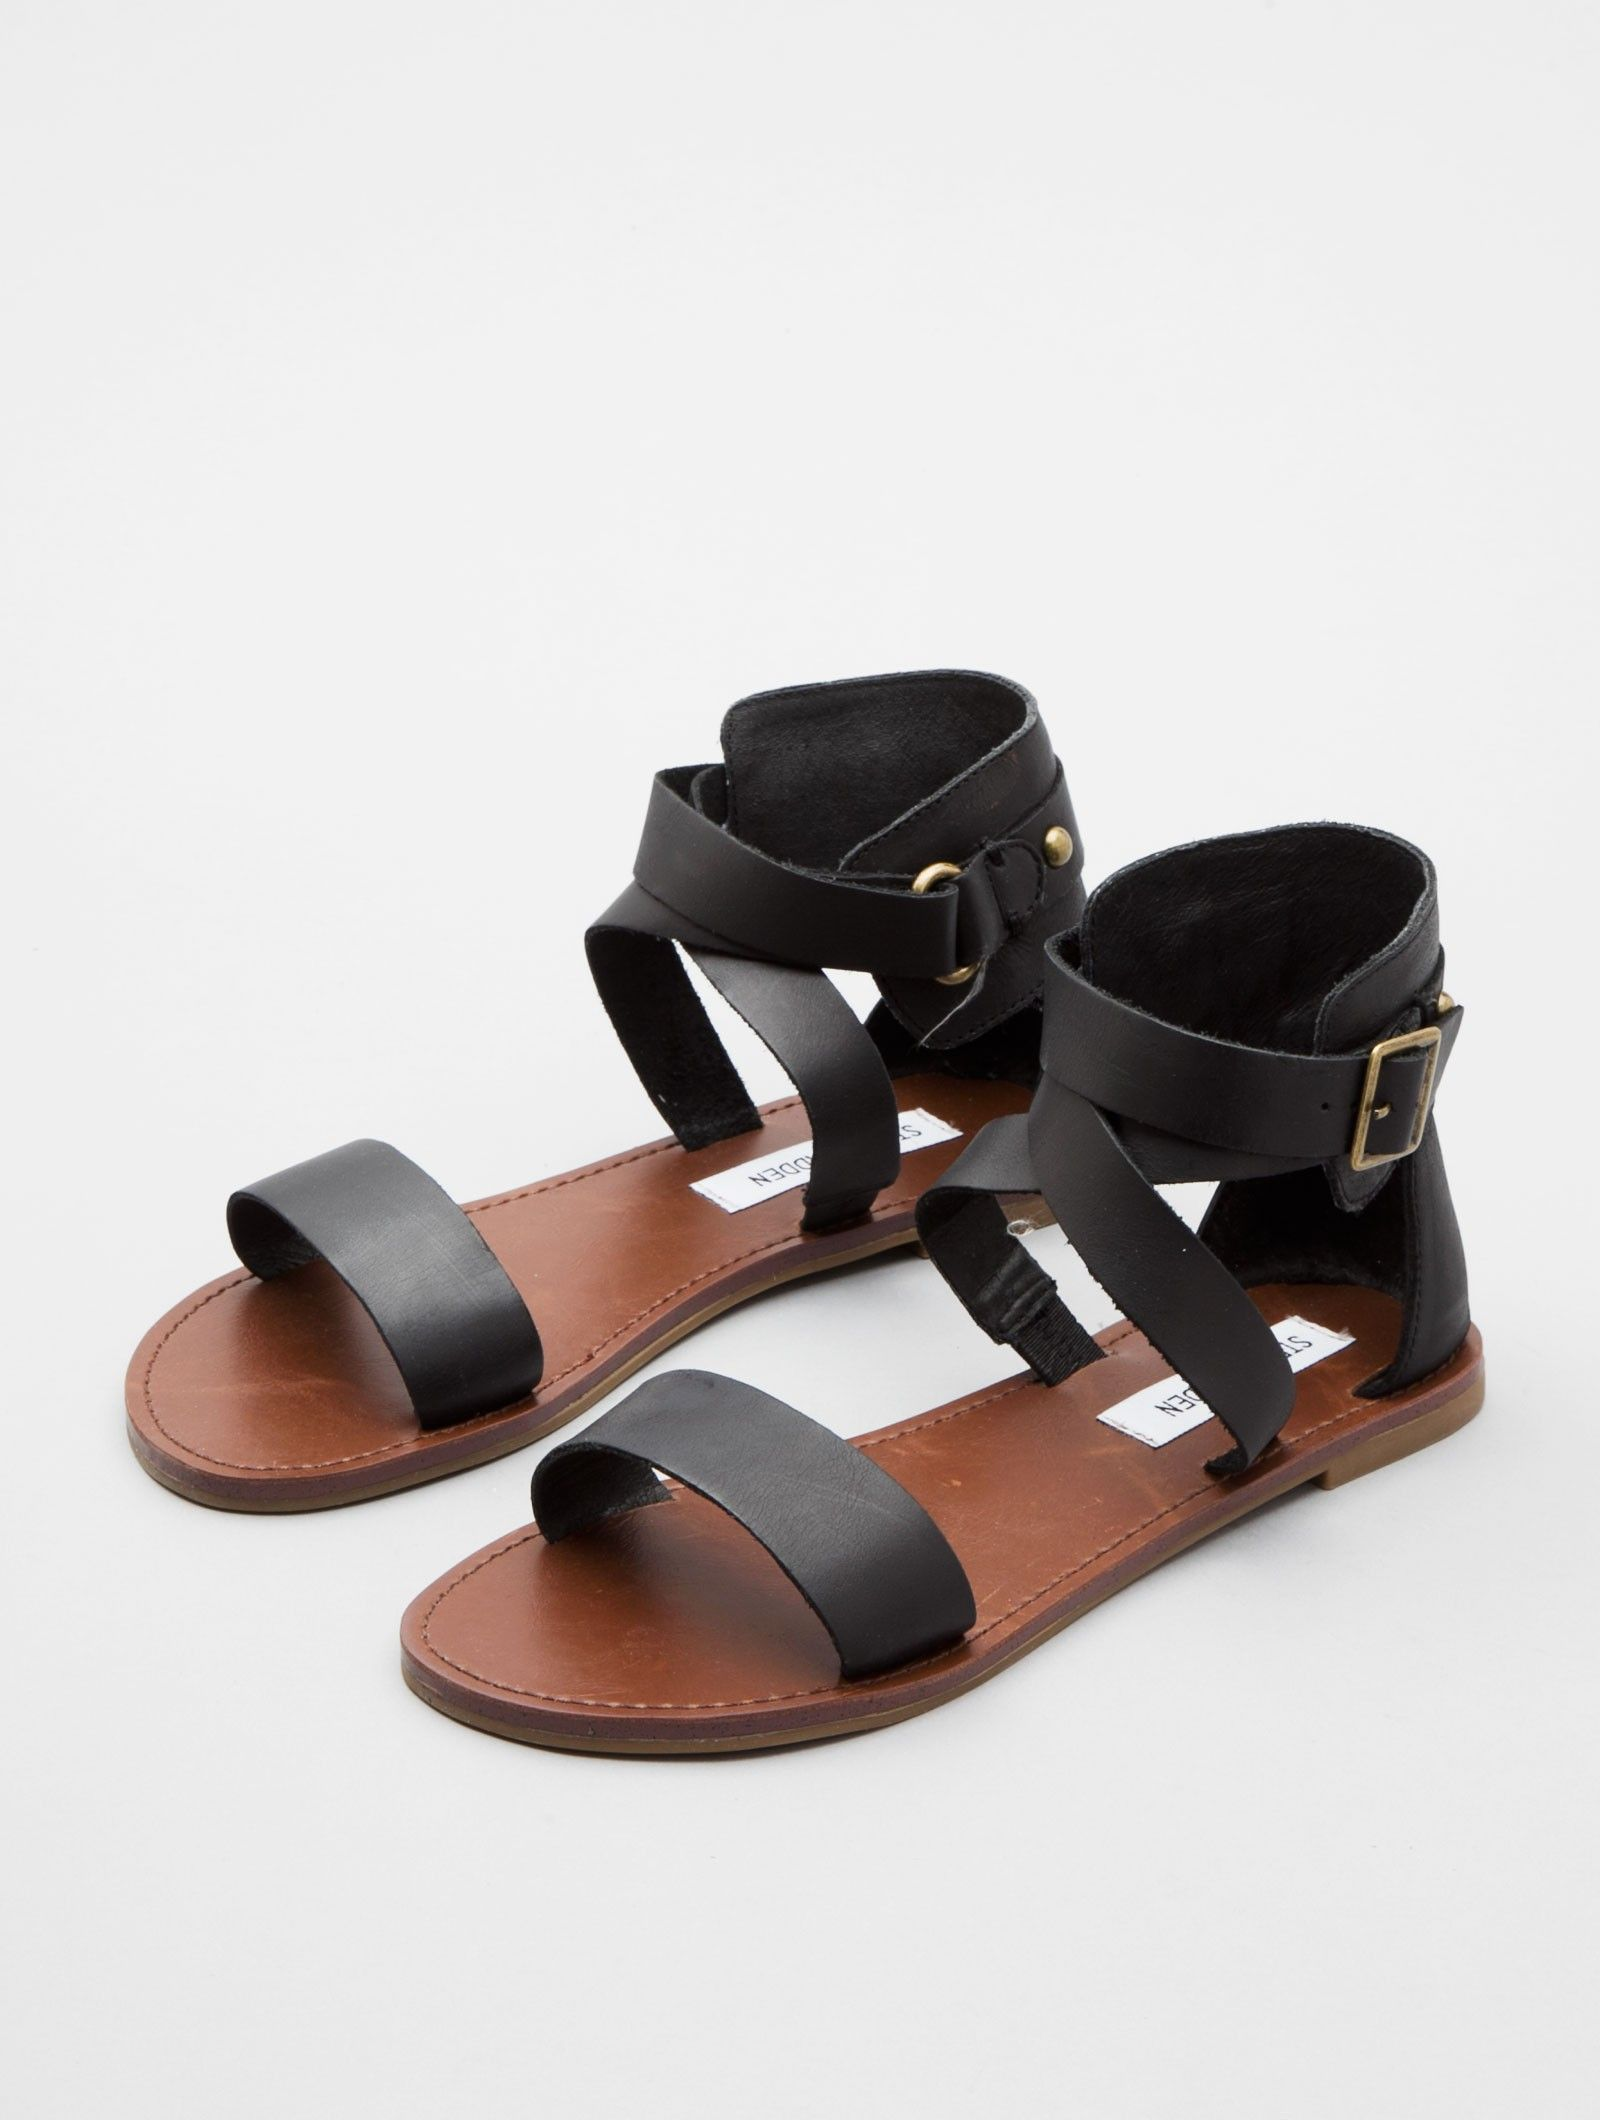 BETHANYY by Steve Madden     Need these to carry me through the rest of summer!